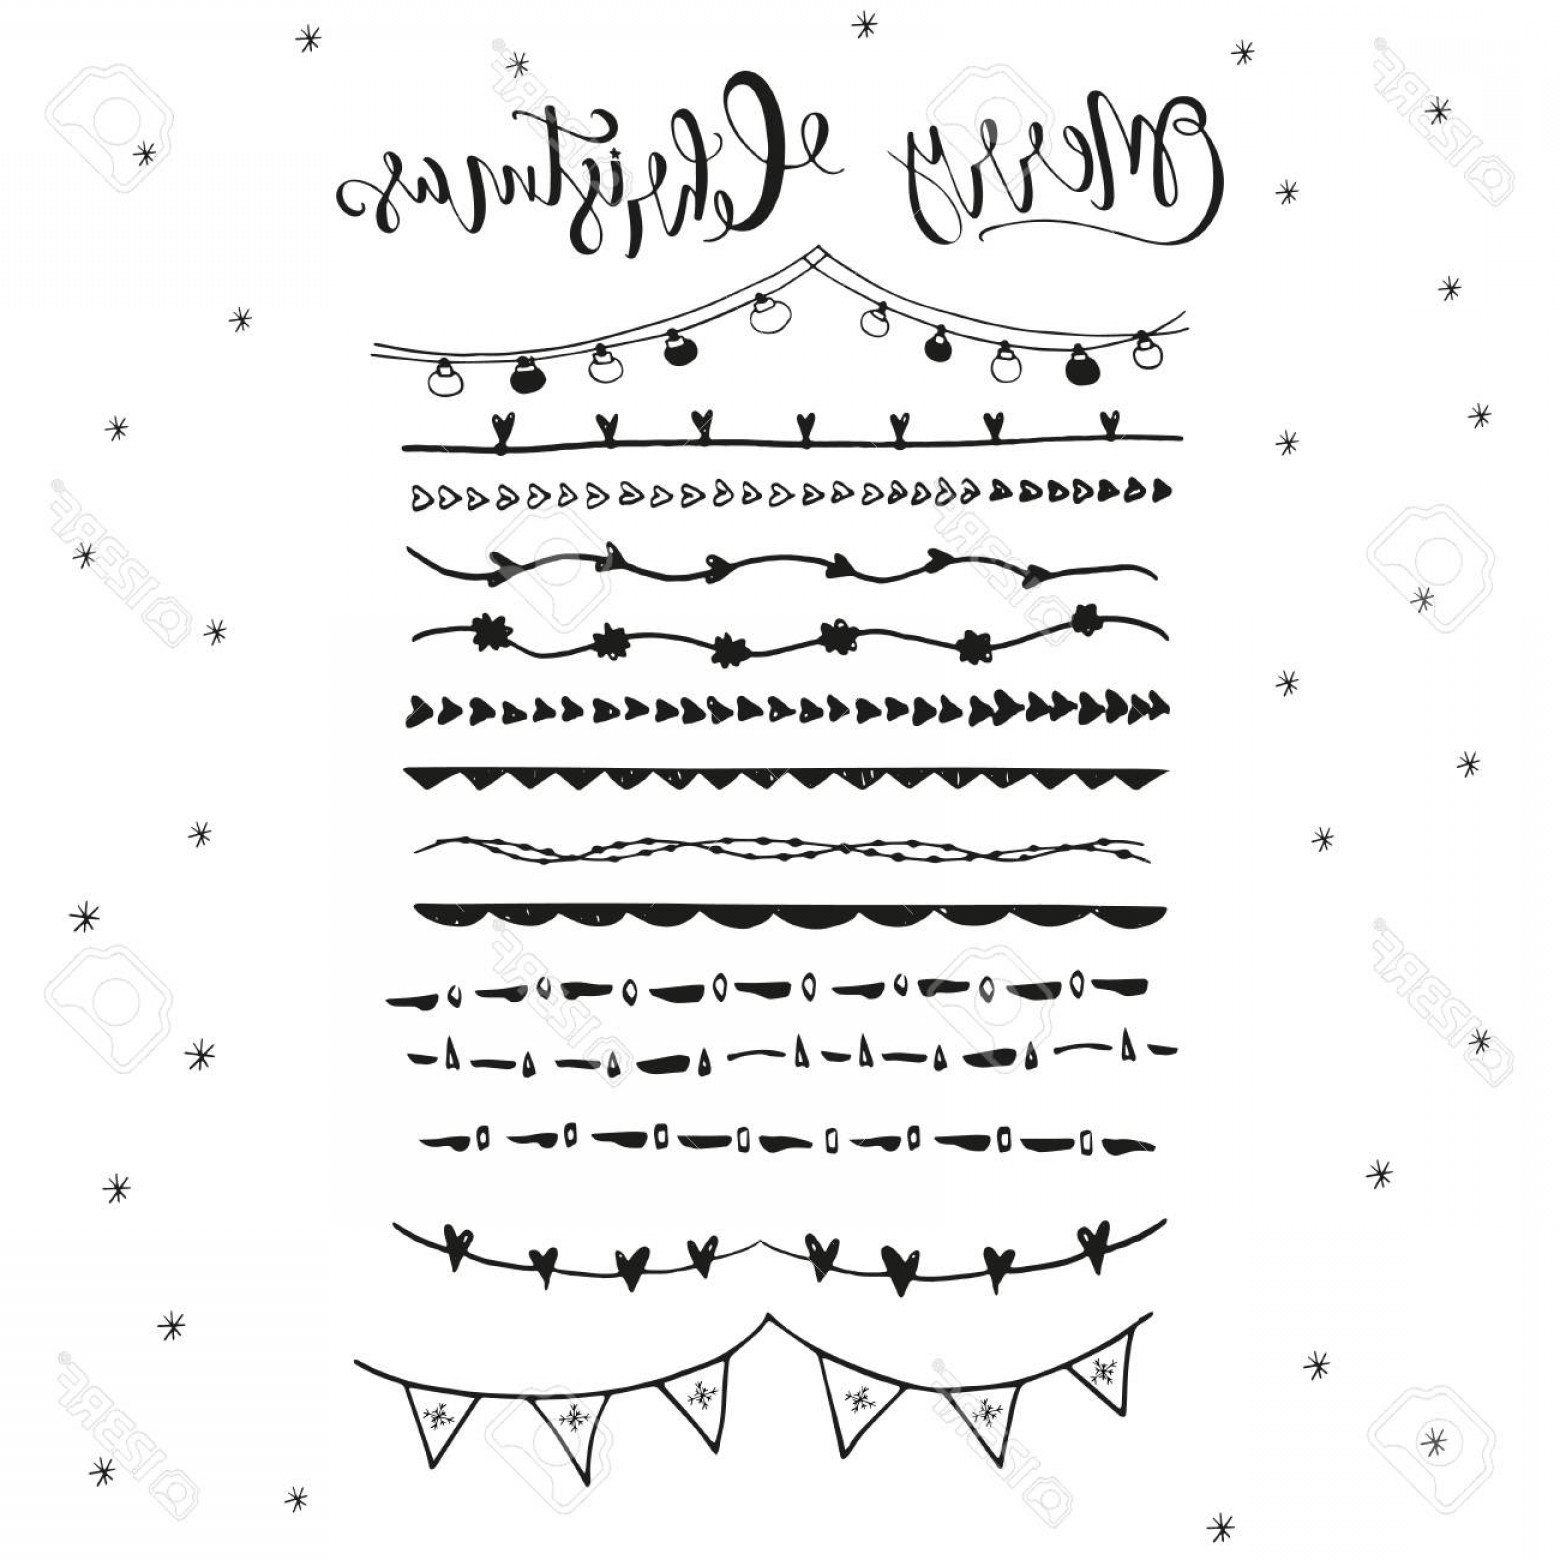 Christmas Divider Vector: Photostock Vector Collection Of Hand Drawn Christmas Borders With Lettering Cute And Unique Ink Swirls And Dividers Fo